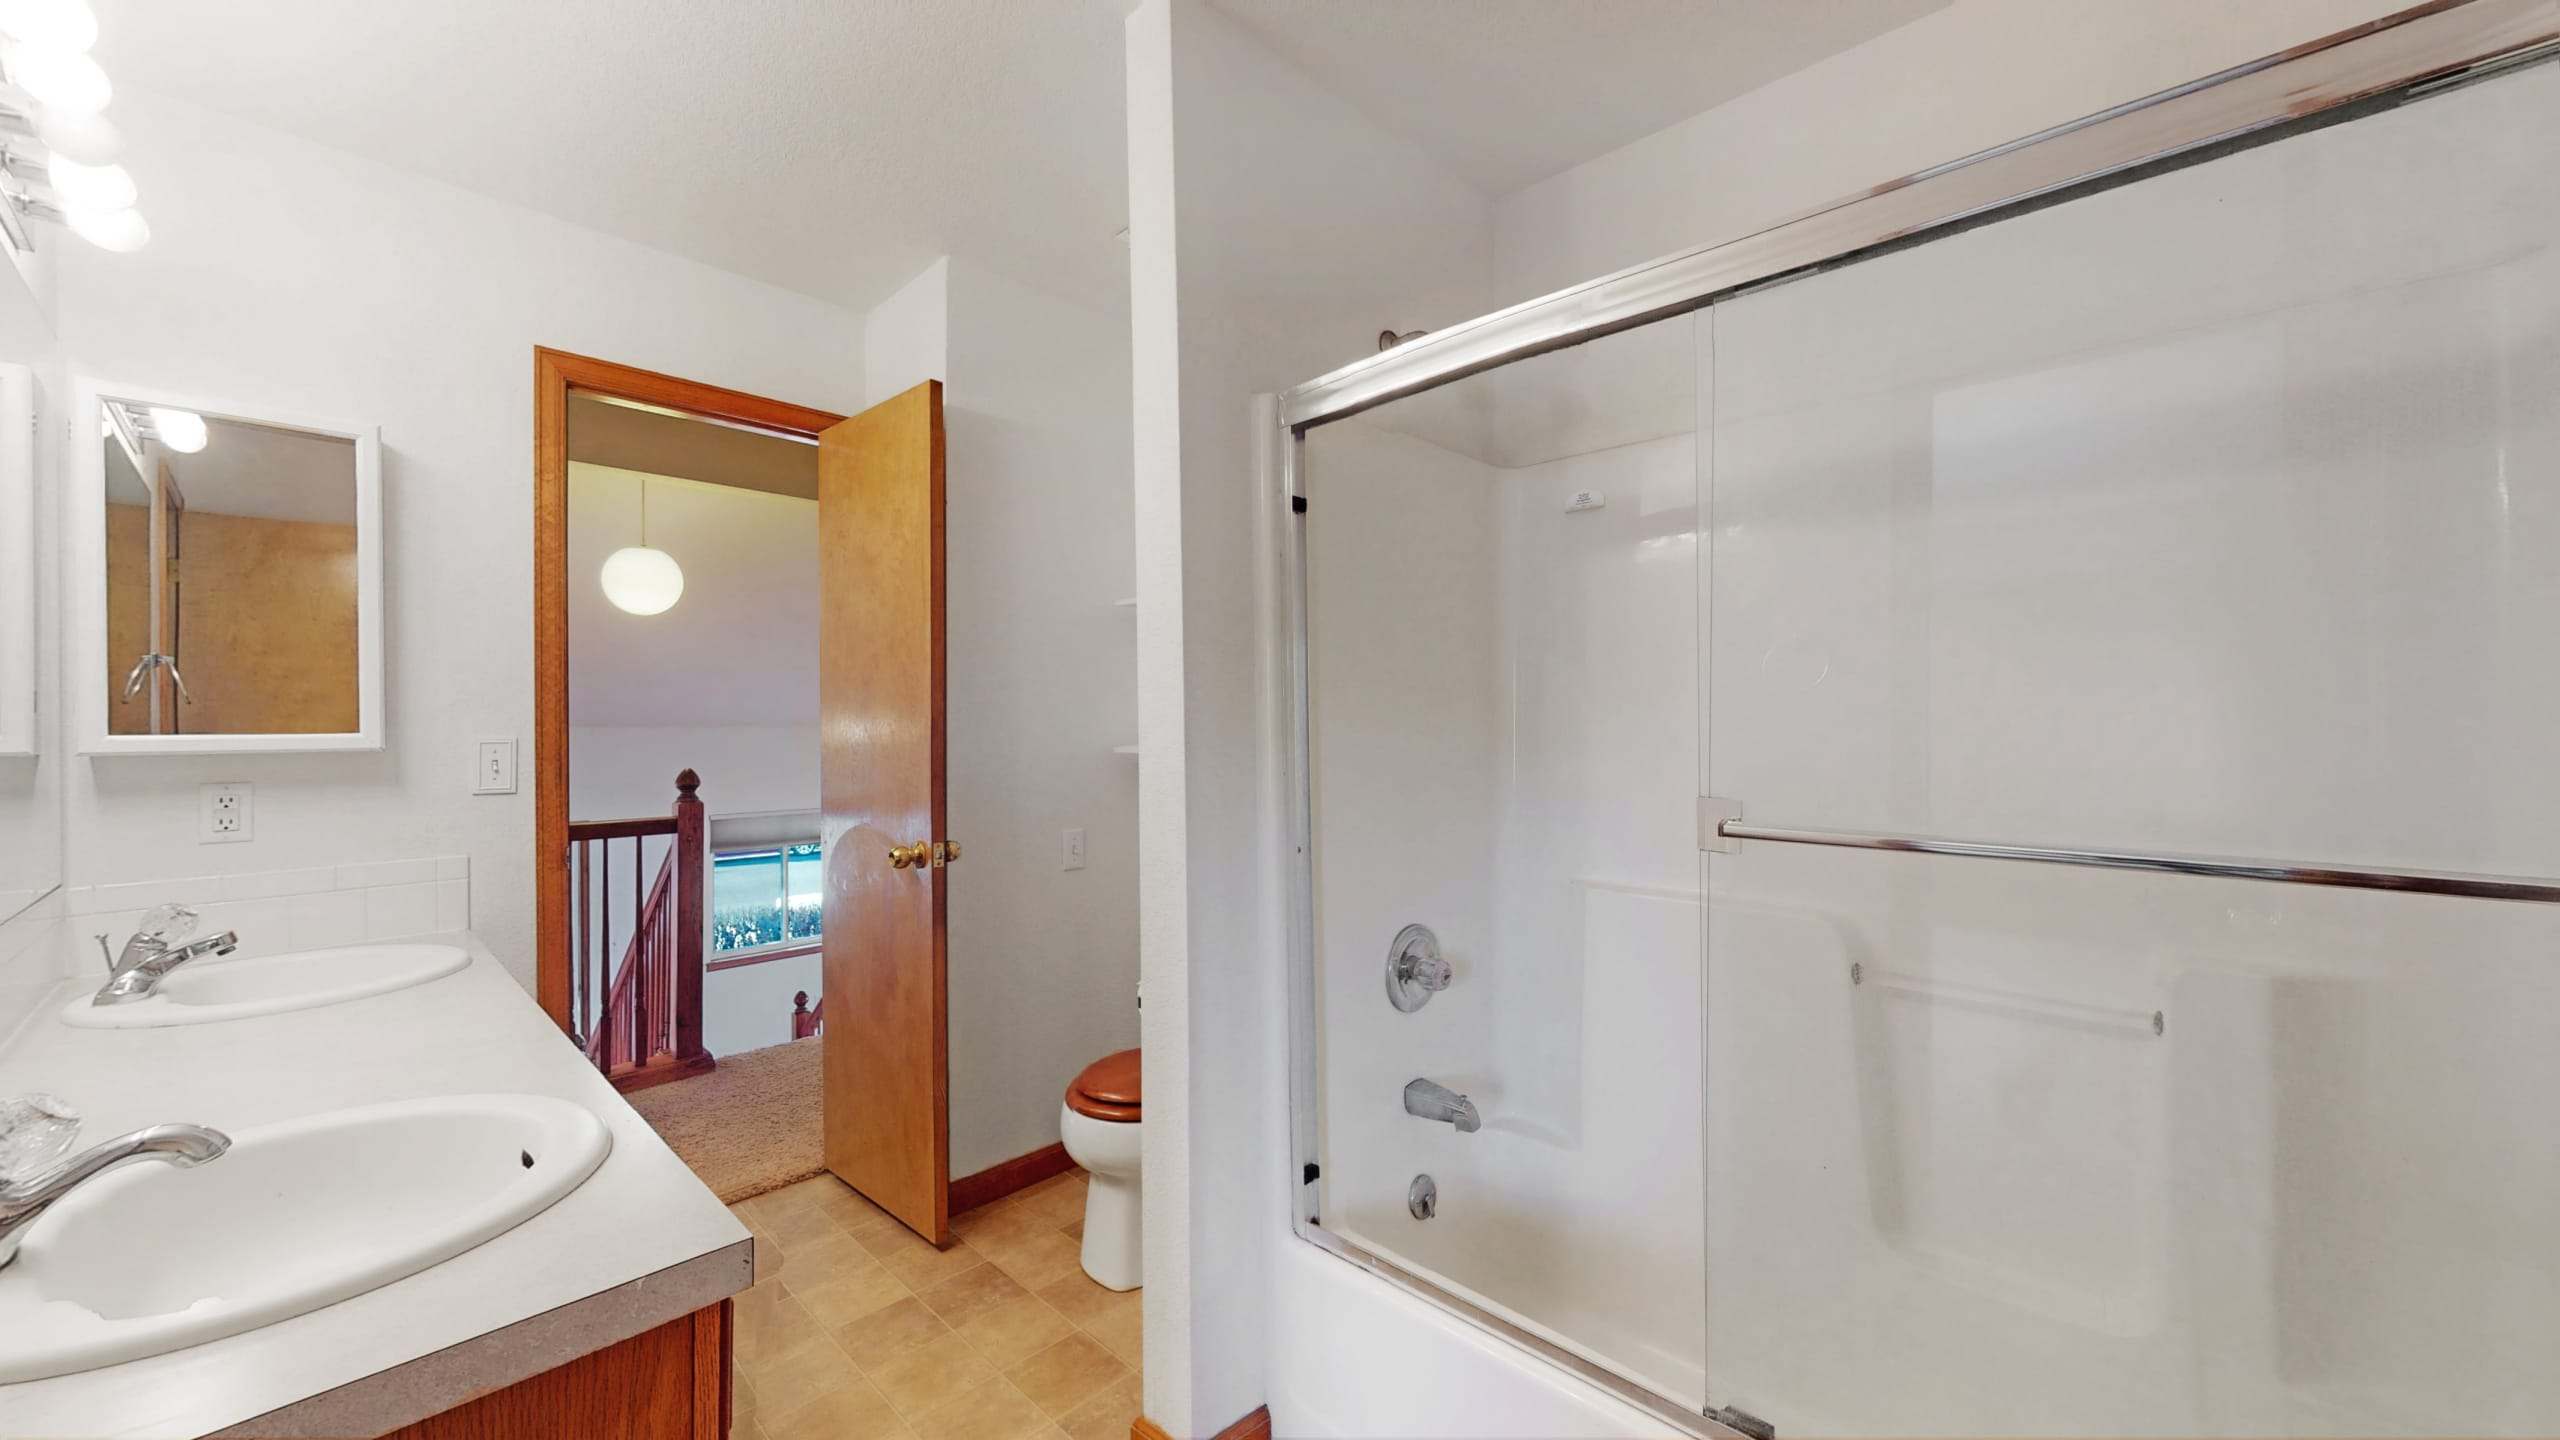 Master bathroom with white shower, glass door white walls and double sinks